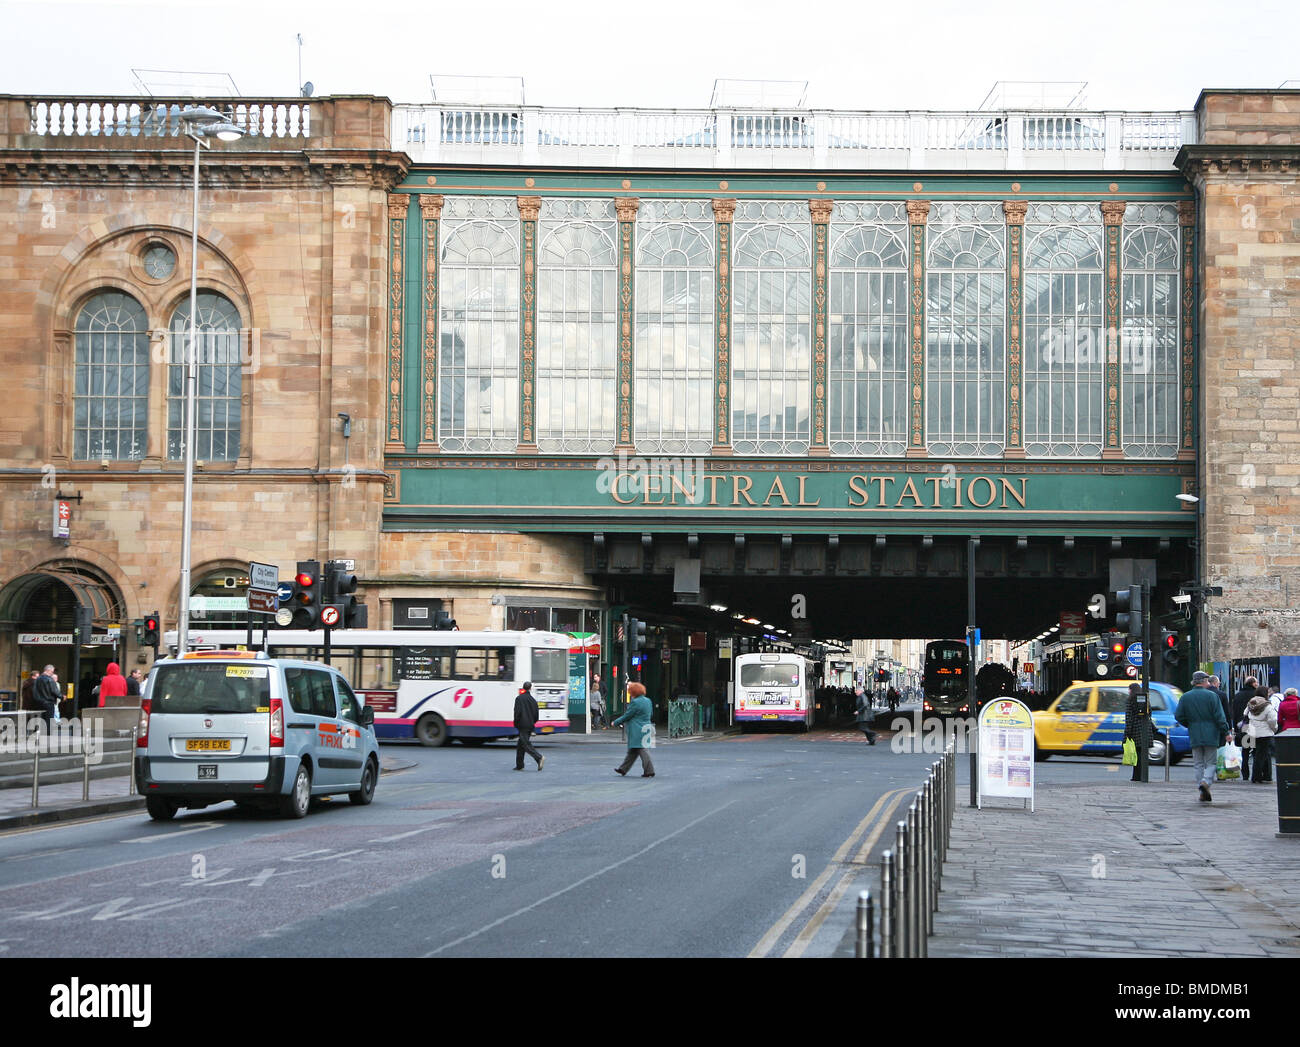 Glasgow Central rail Station facade, Argyle Street, Glasgow, Scotland, UK - Stock Image